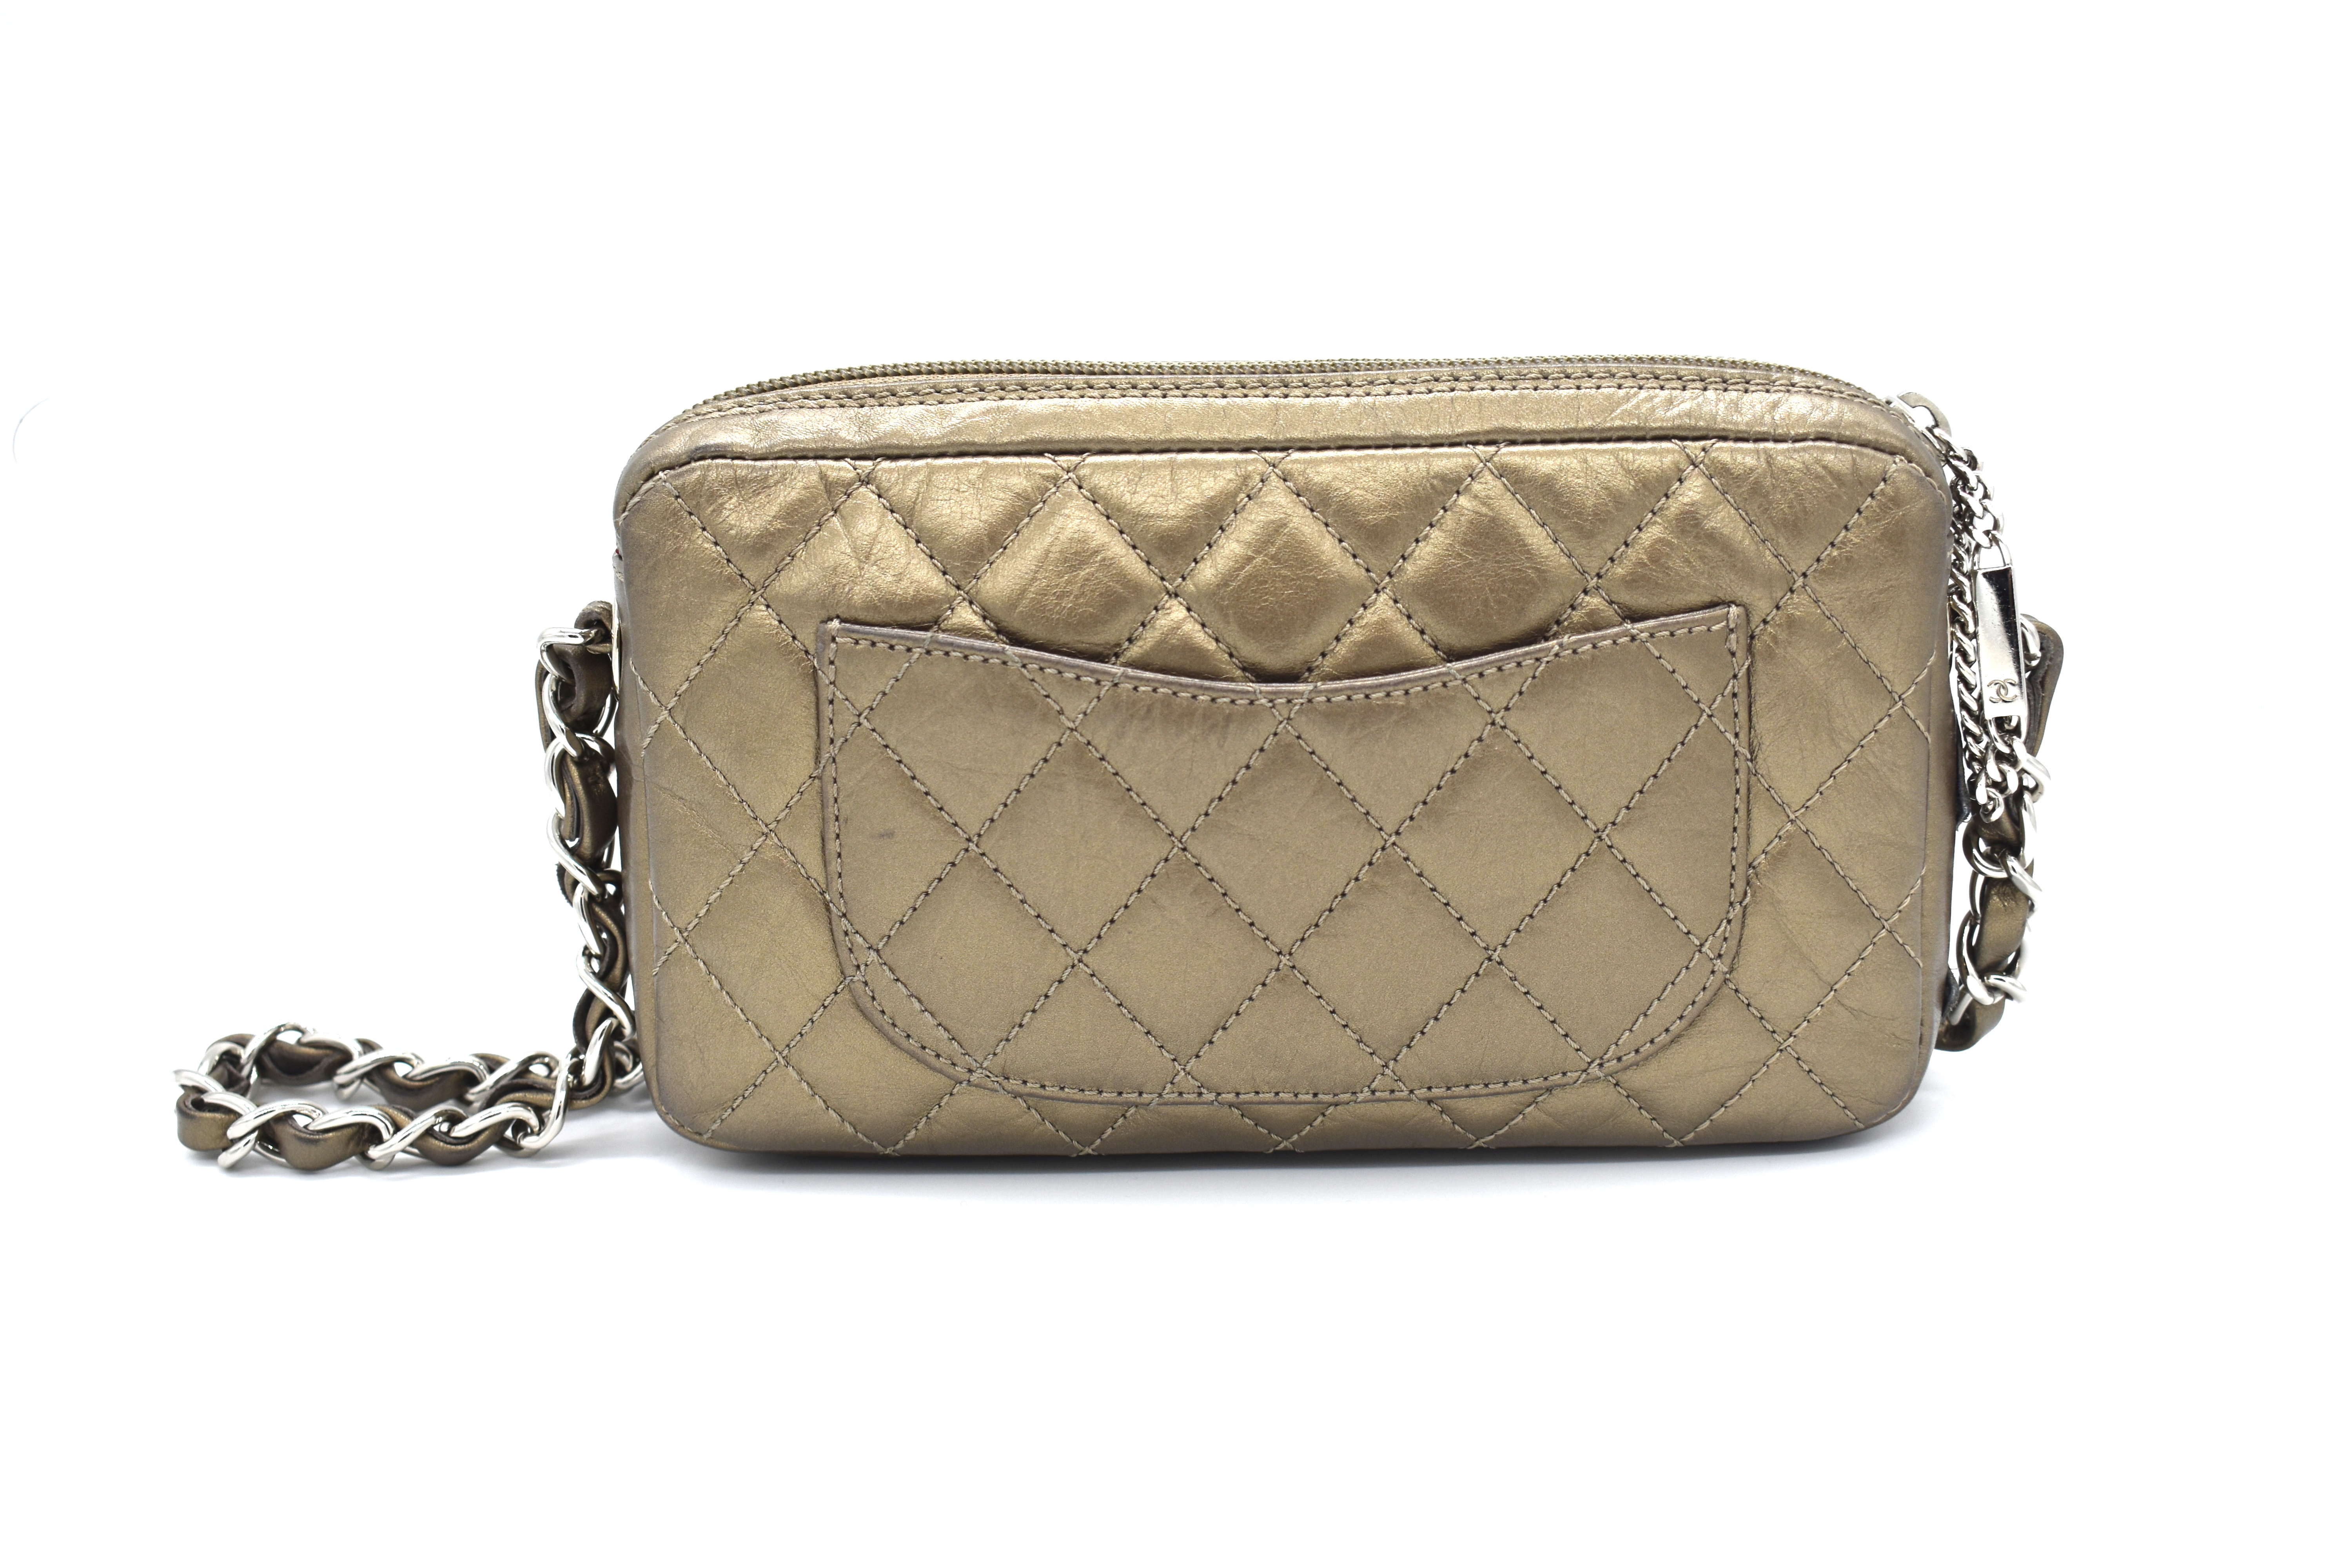 7eb53d8d6764 Chanel Bronze Quilted Clutch Bag – DesignerShare